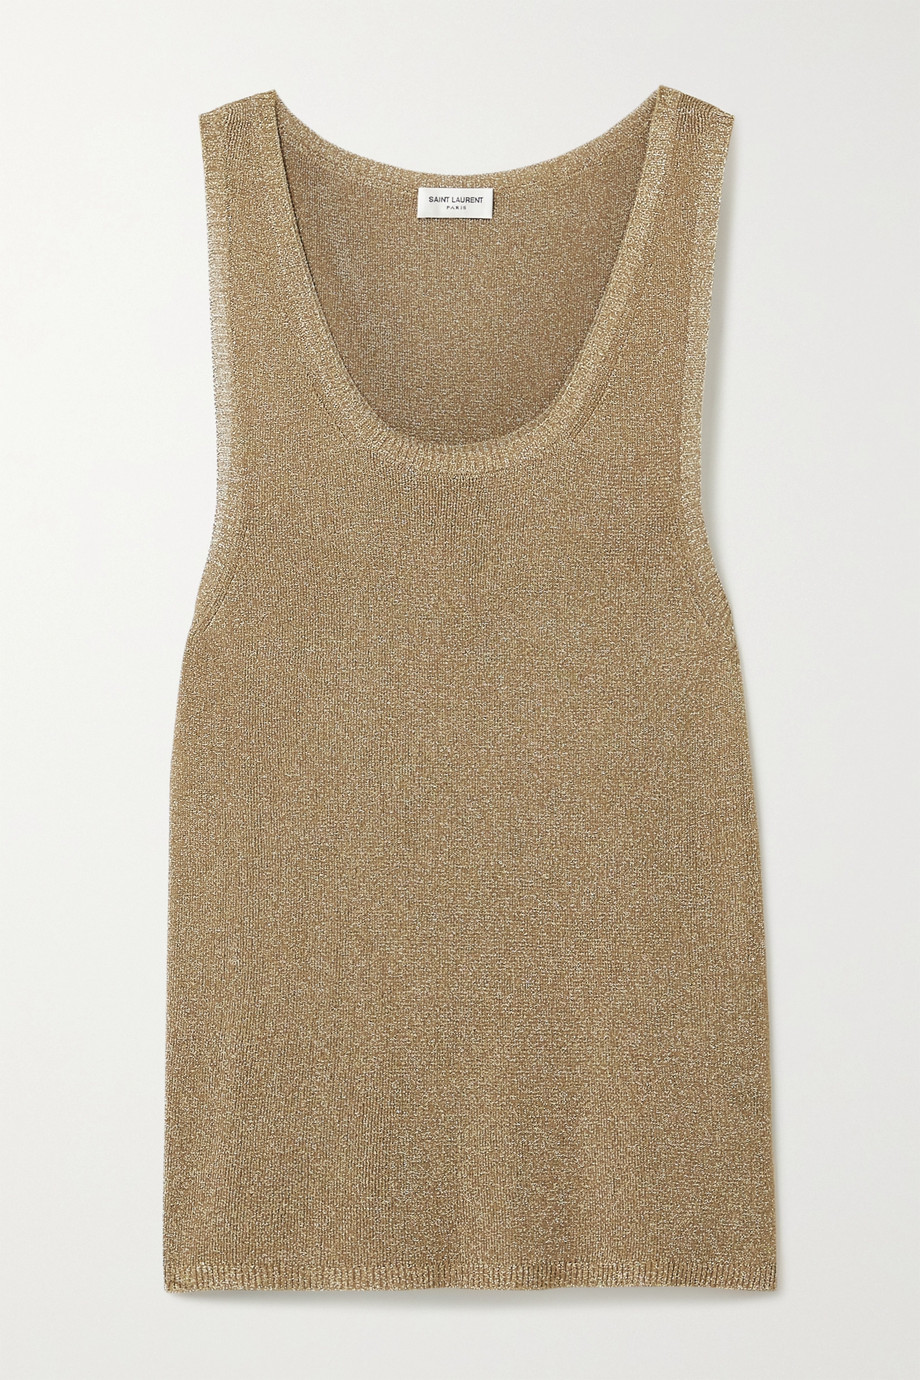 SAINT LAURENT Metallic knitted tank